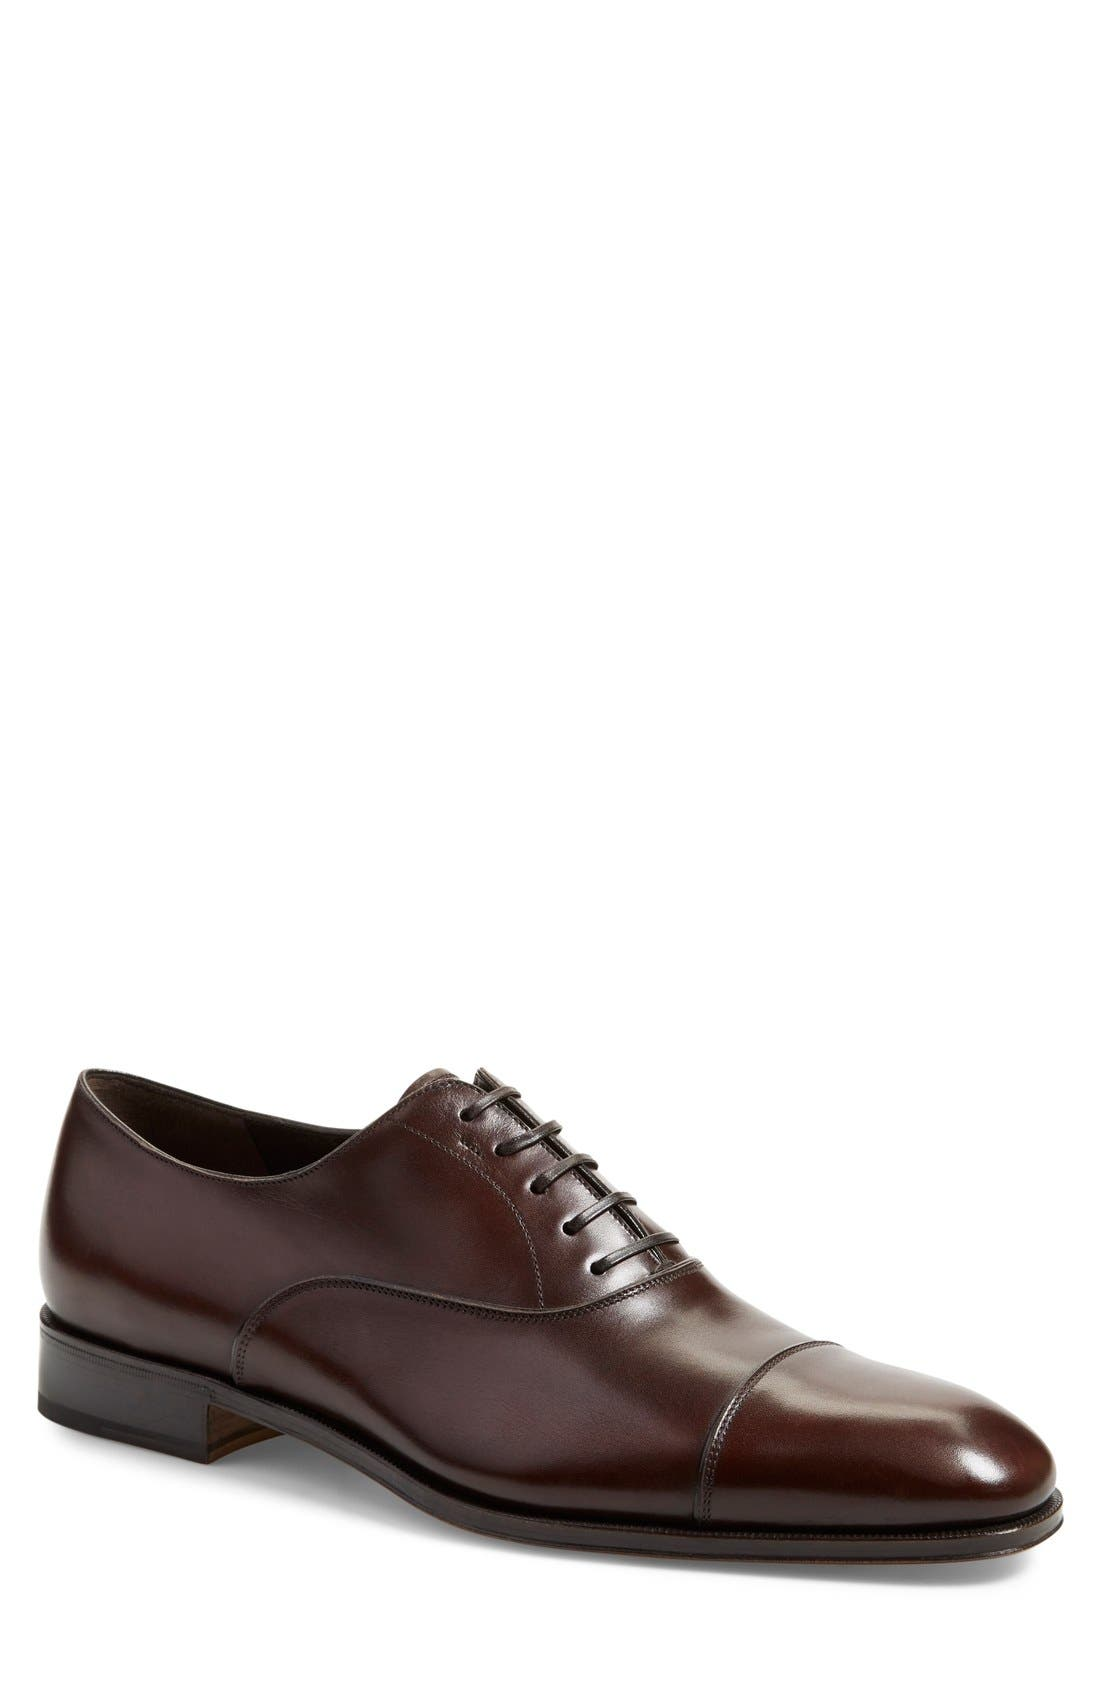 Luce Cap Toe Oxford,                             Main thumbnail 1, color,                             200